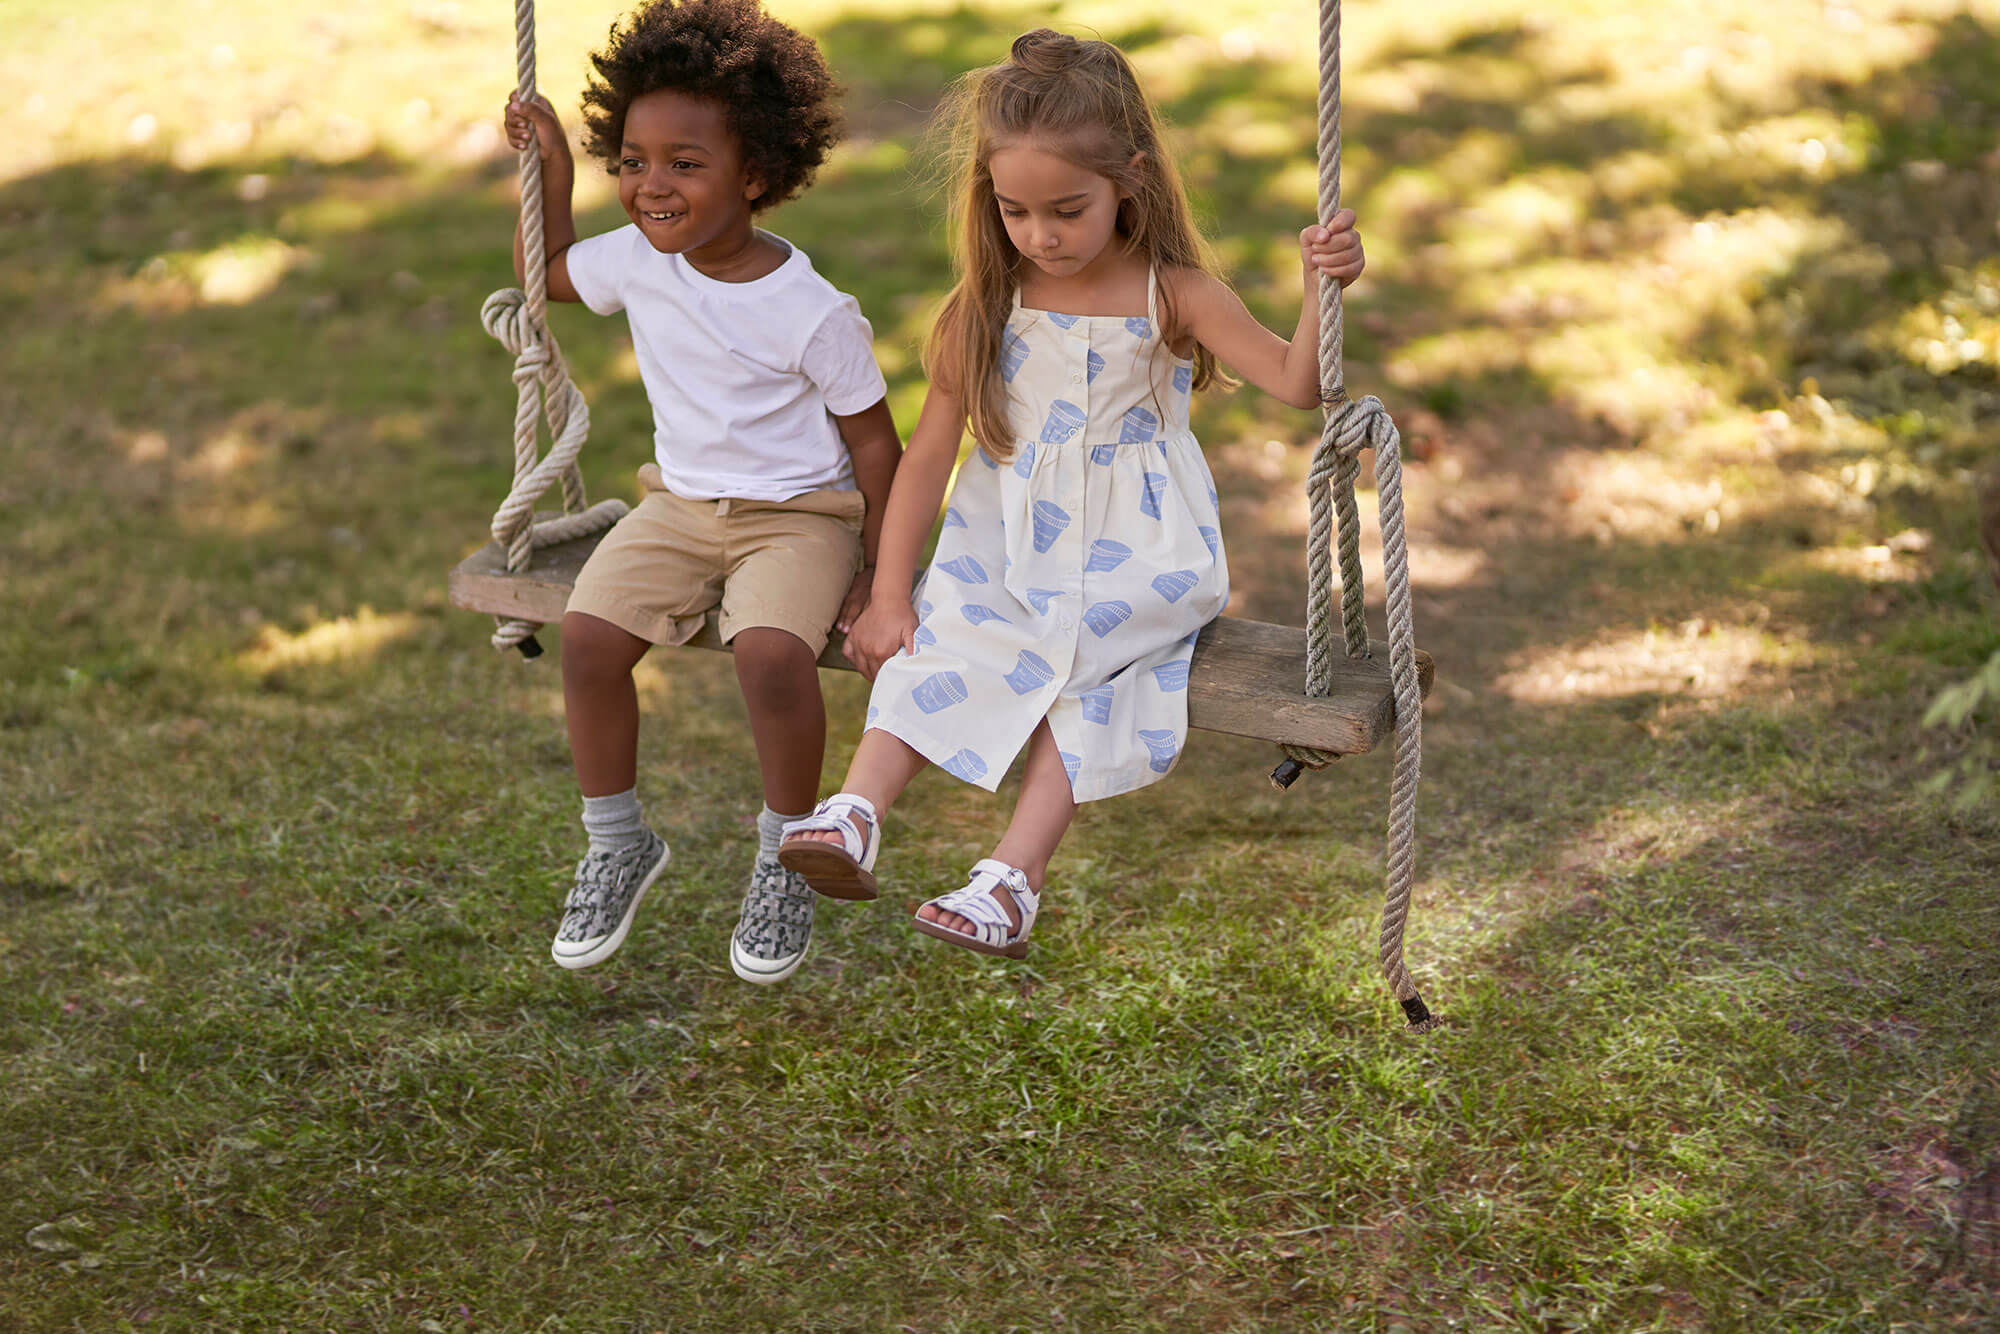 Boy and girl on rope swing